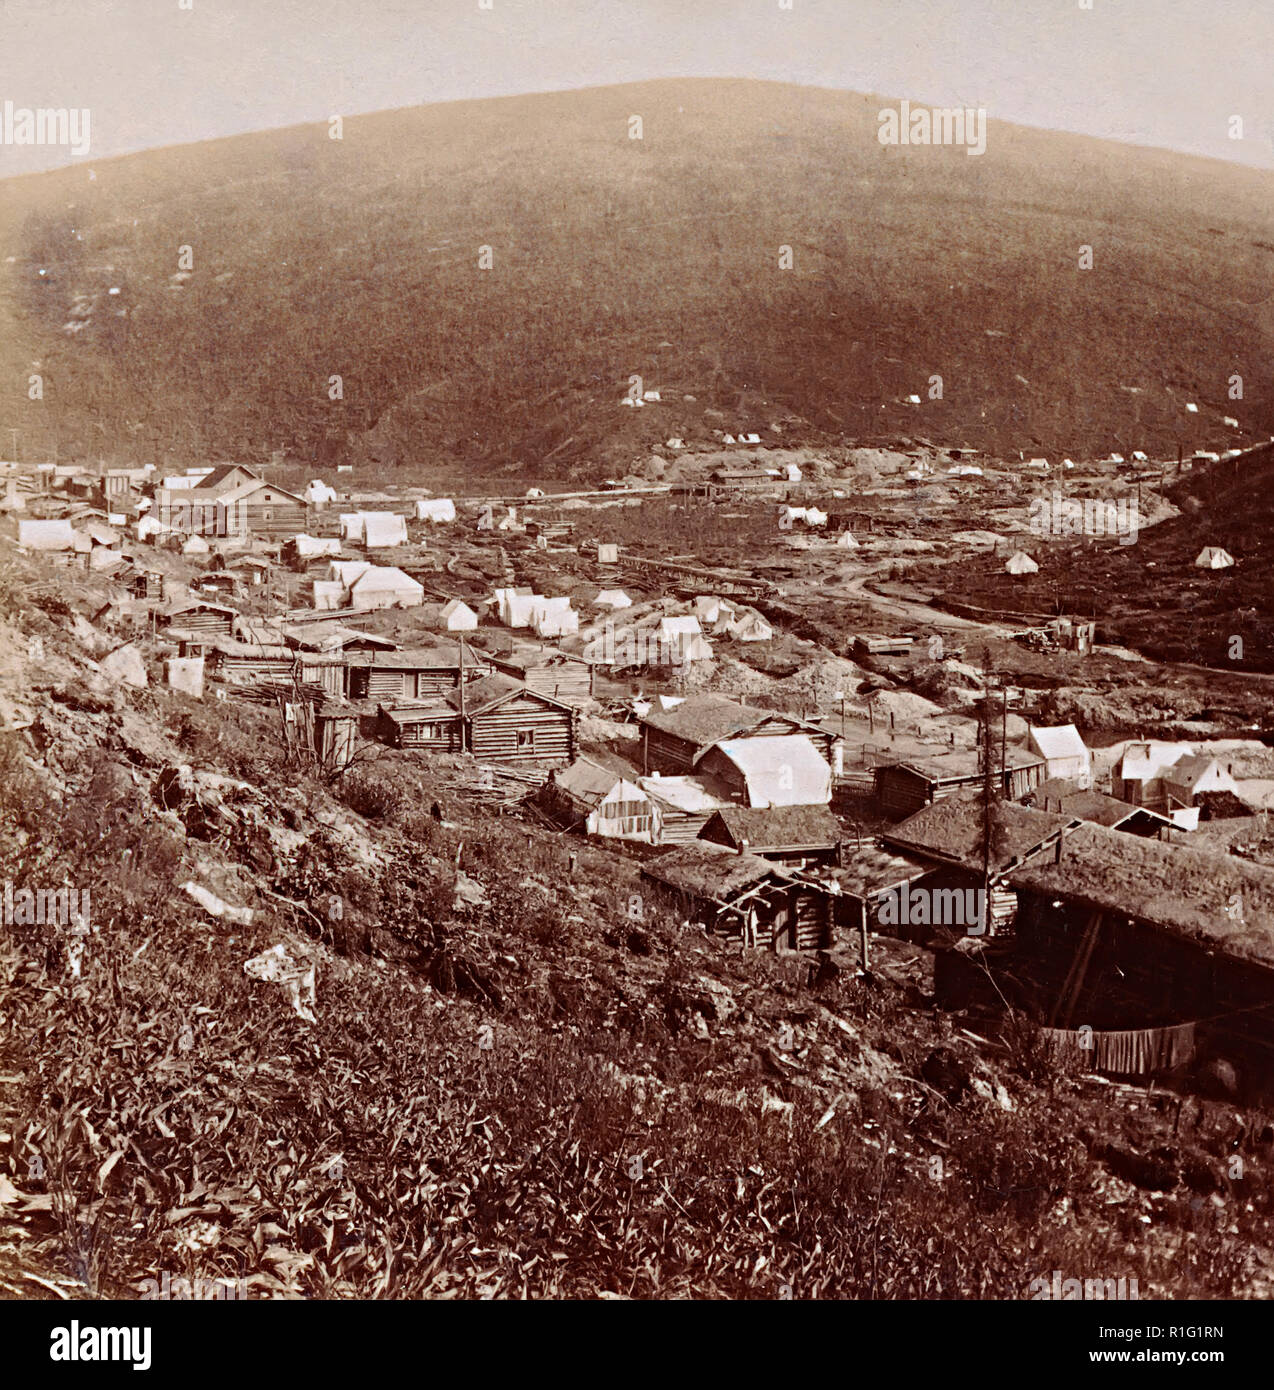 Township and tents set up at the junction of gold-rich Eldorado and Bonanza creeks, Yukon District, Canada, 1901, taken during the Klondike gold rush - Stock Image